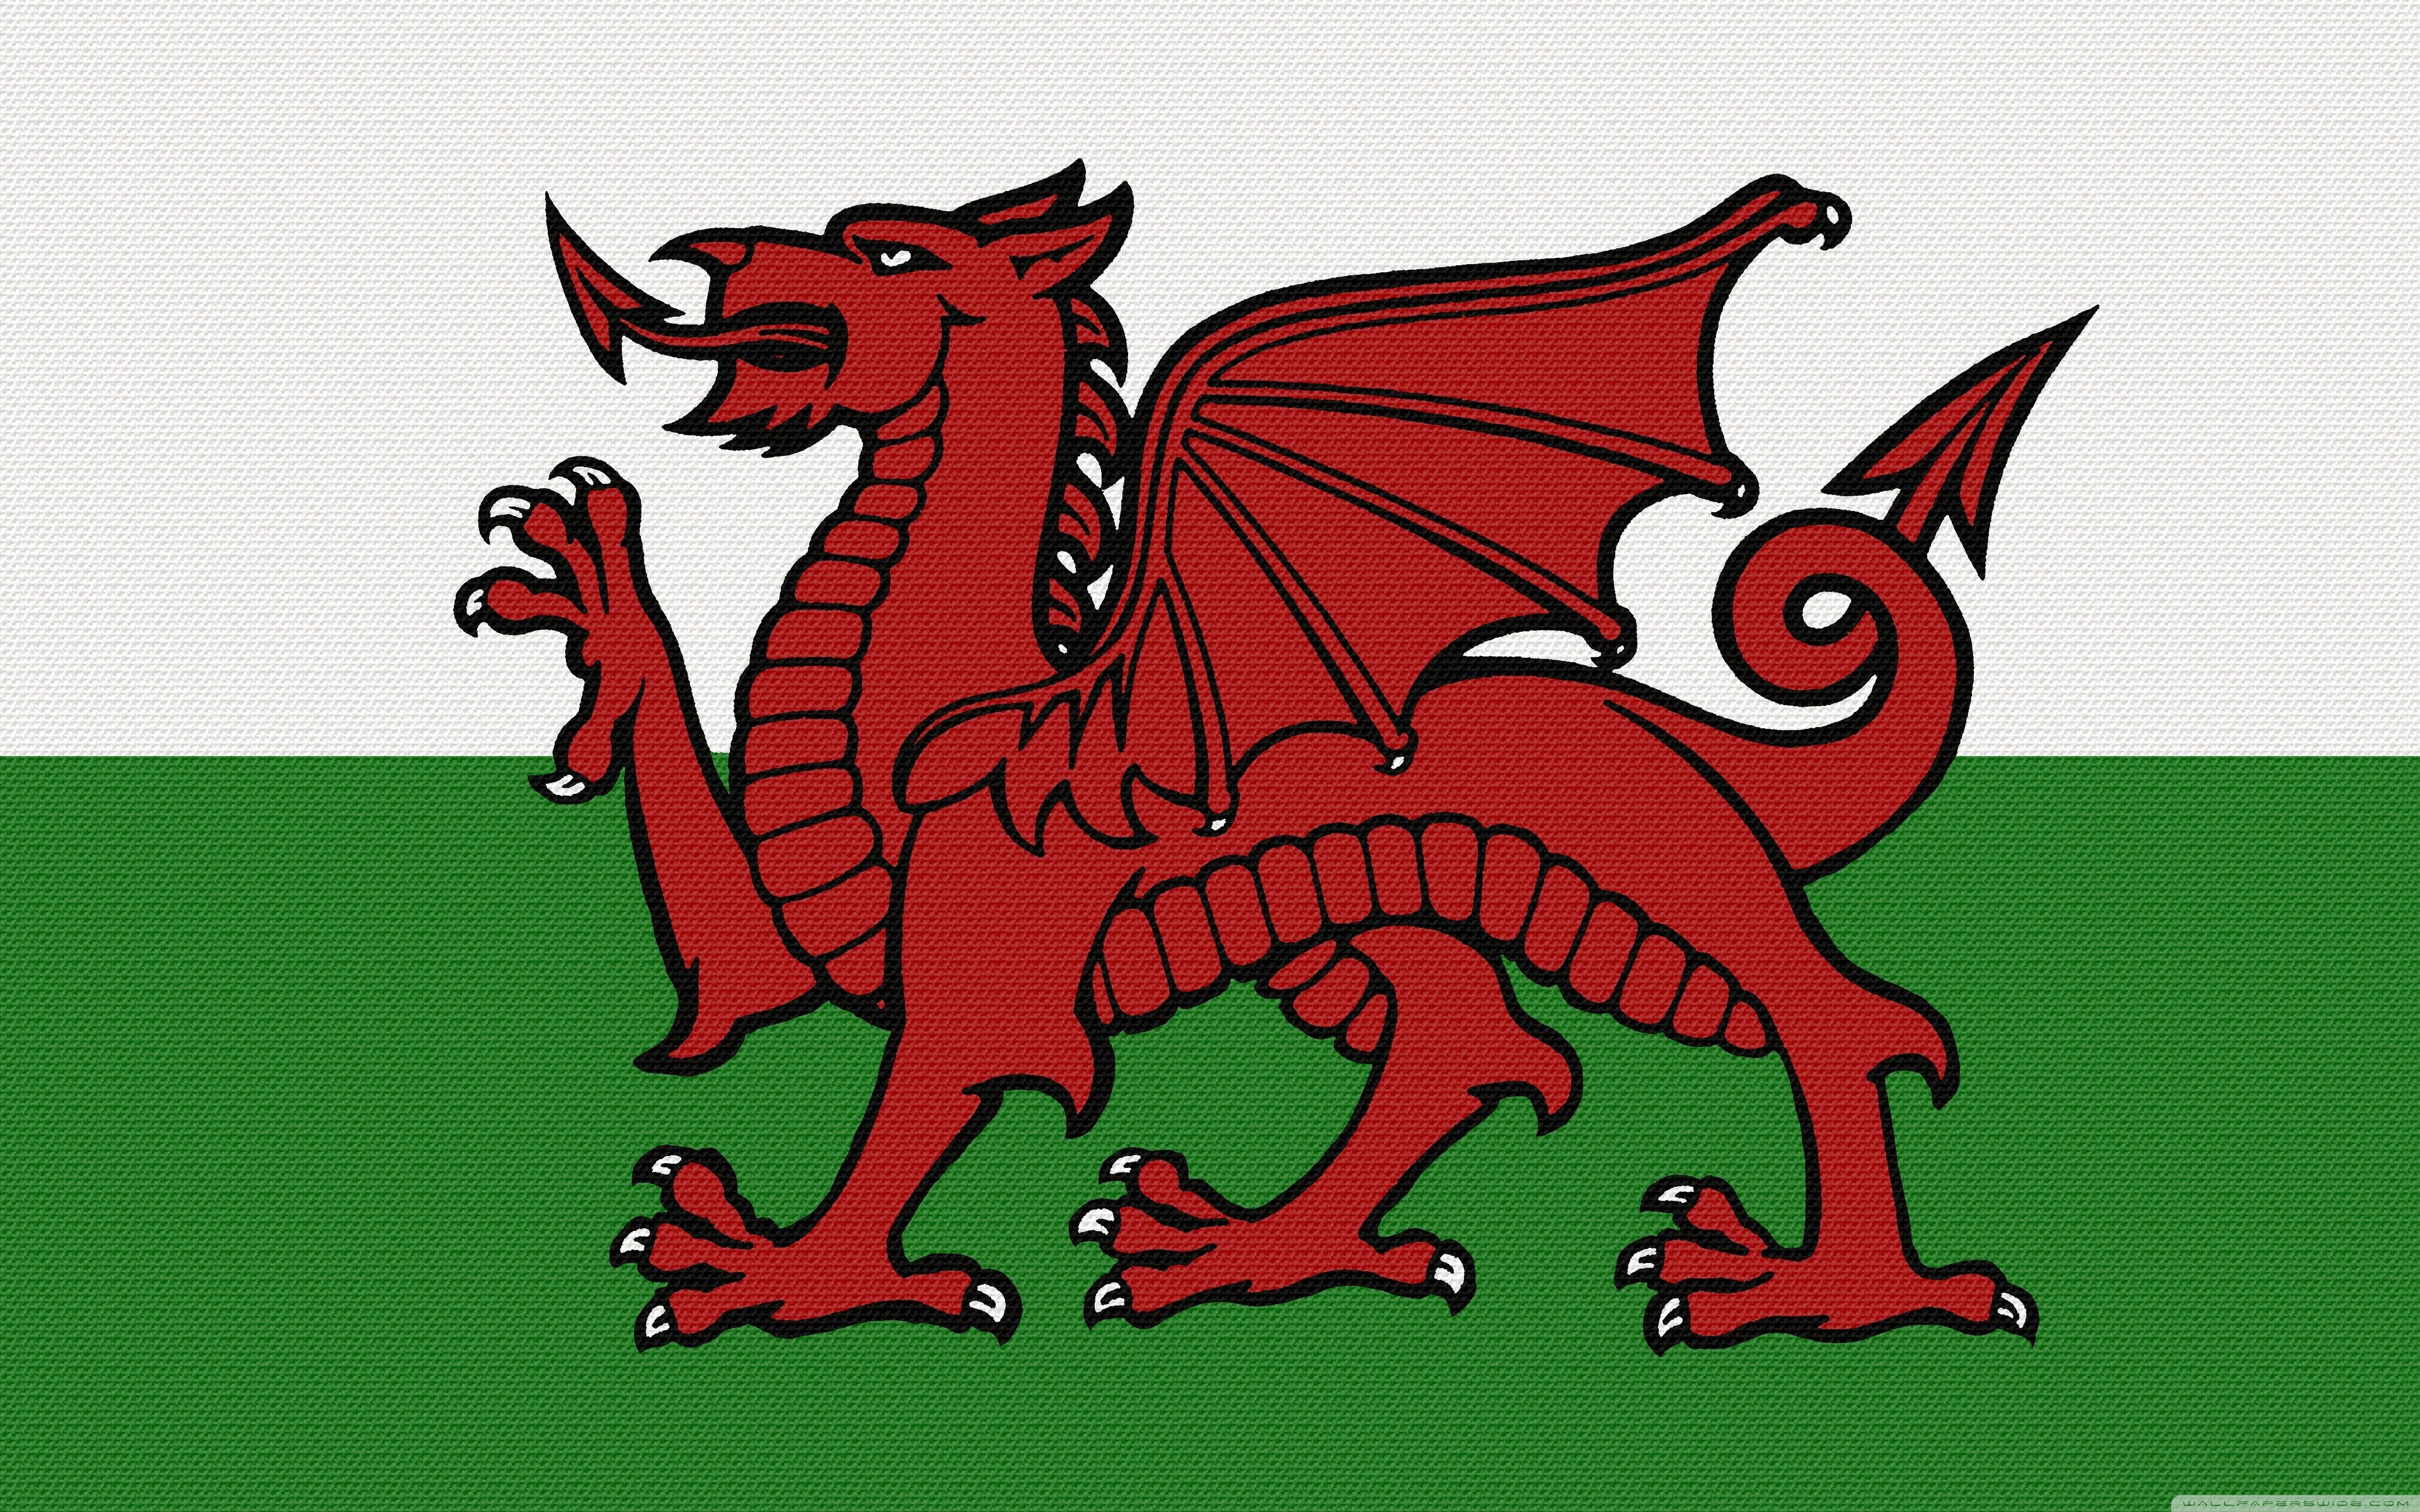 Y Ddraig Goch 4K HD Desktop Wallpaper for 4K Ultra HD TV 3840x2400